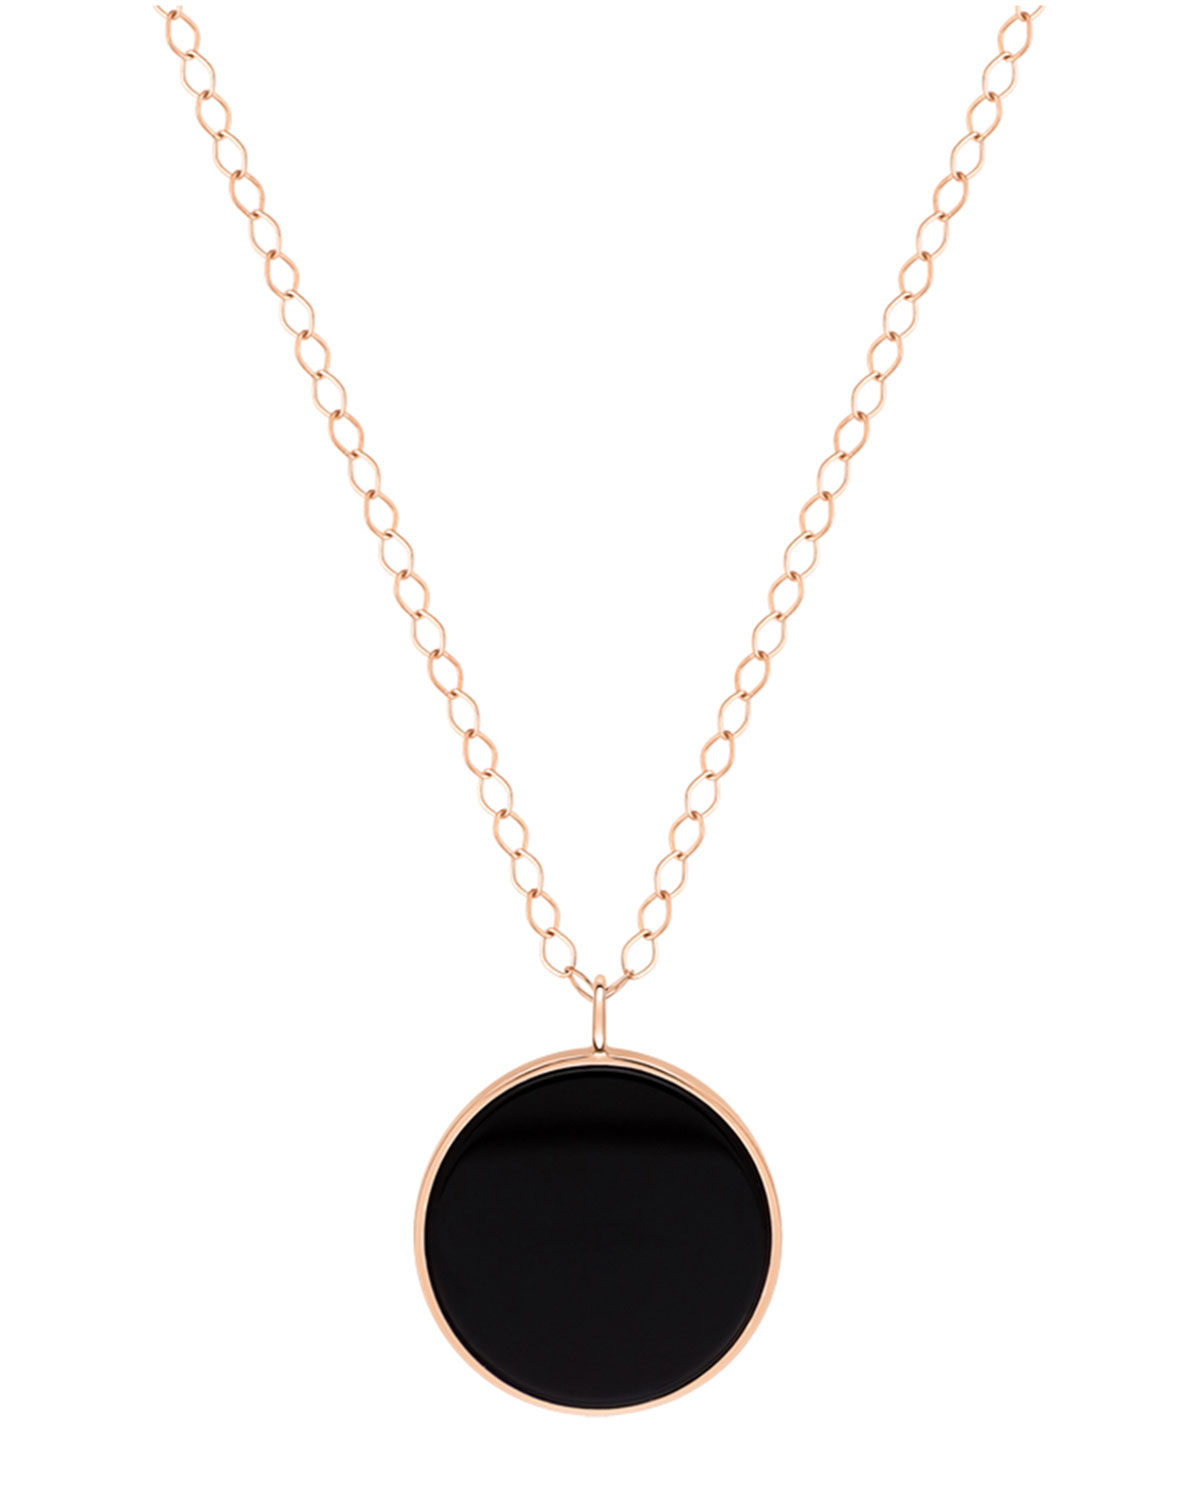 18k Rose Gold Jumbo Ever Disc Necklace in Black Onyx